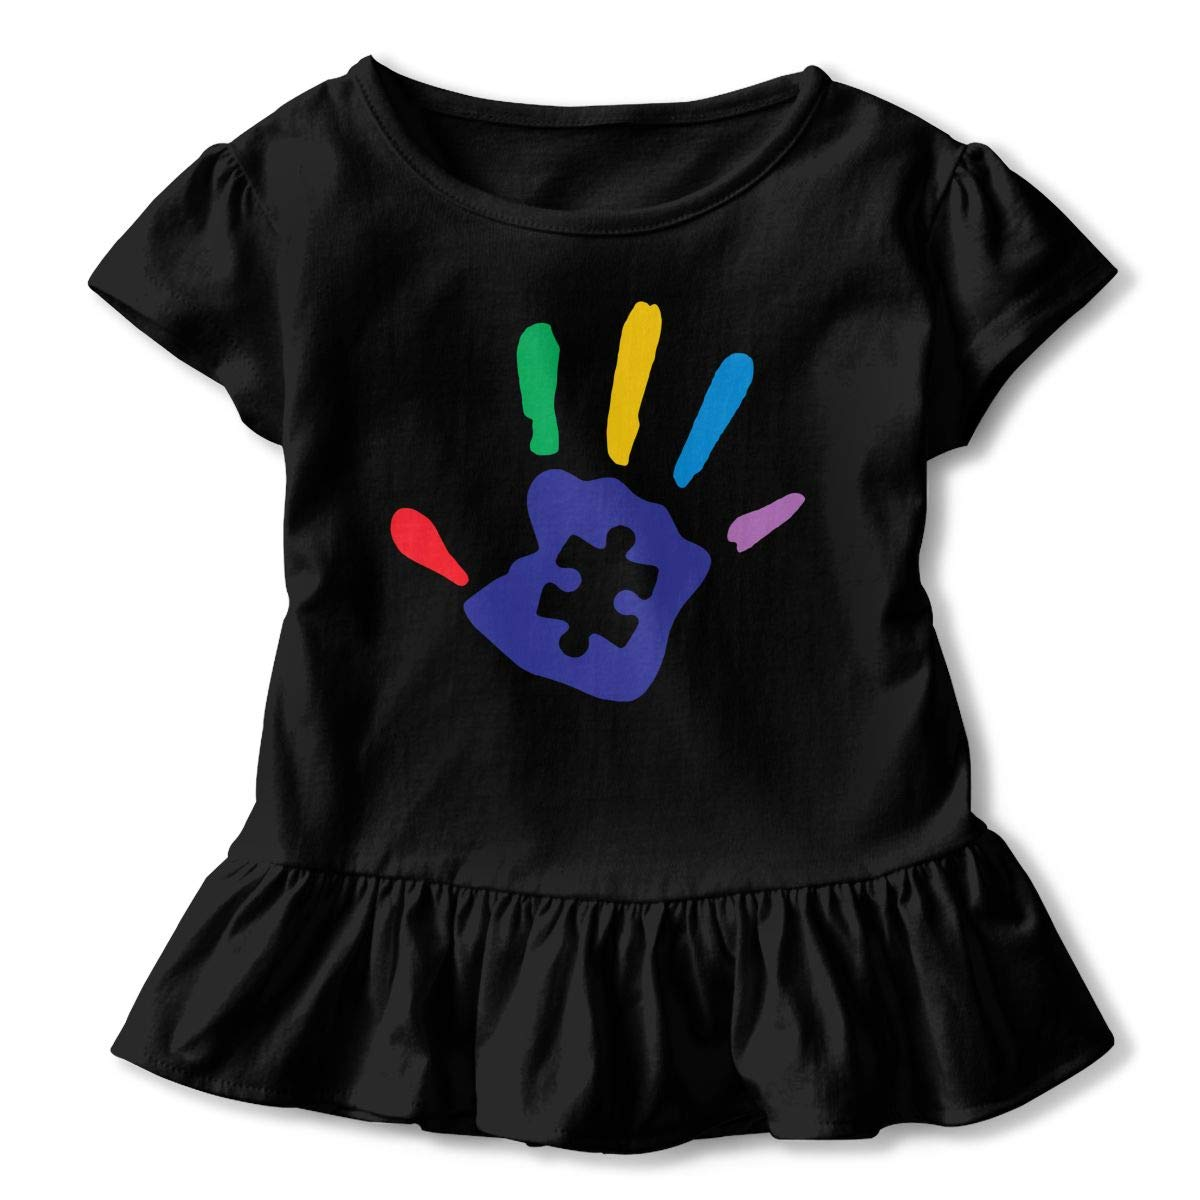 Colorful Autism Hand Childrens Girls Short Sleeve Ruffles Shirt Tee for 2-6 Toddlers